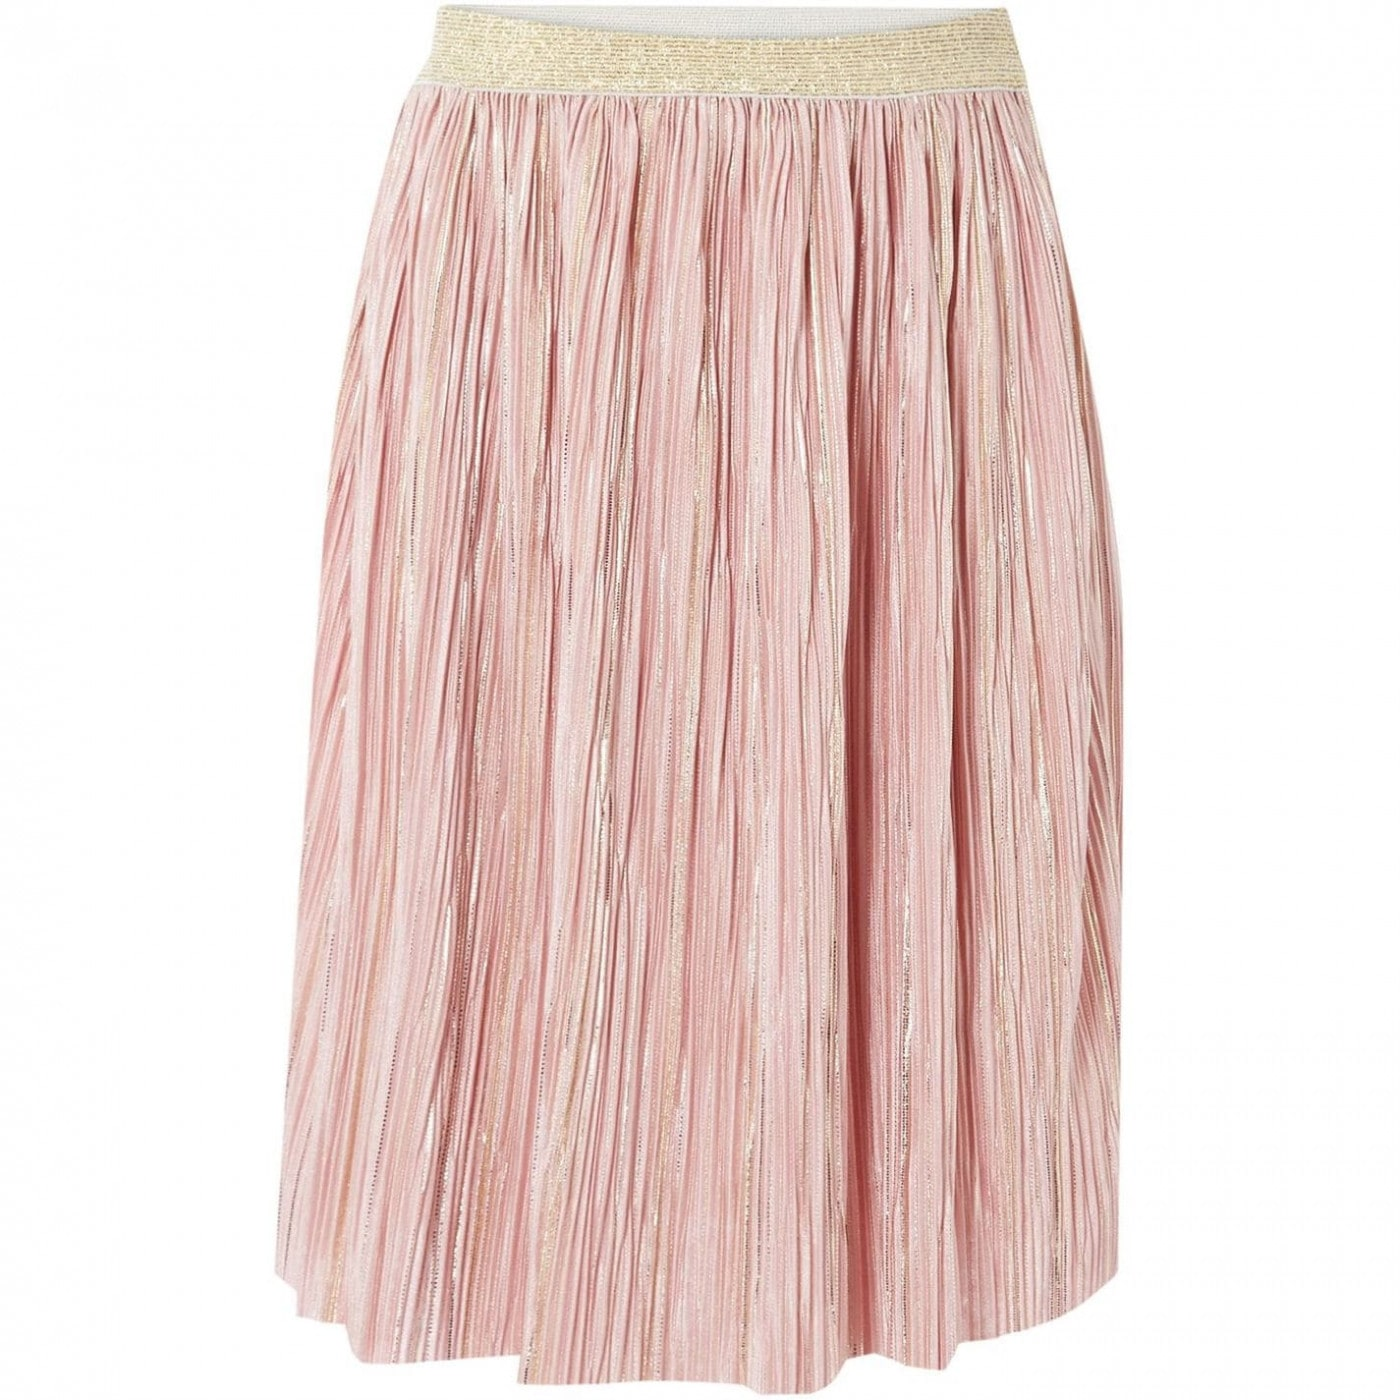 Rose and Wilde Mabelle Plisse Pleat Skirt